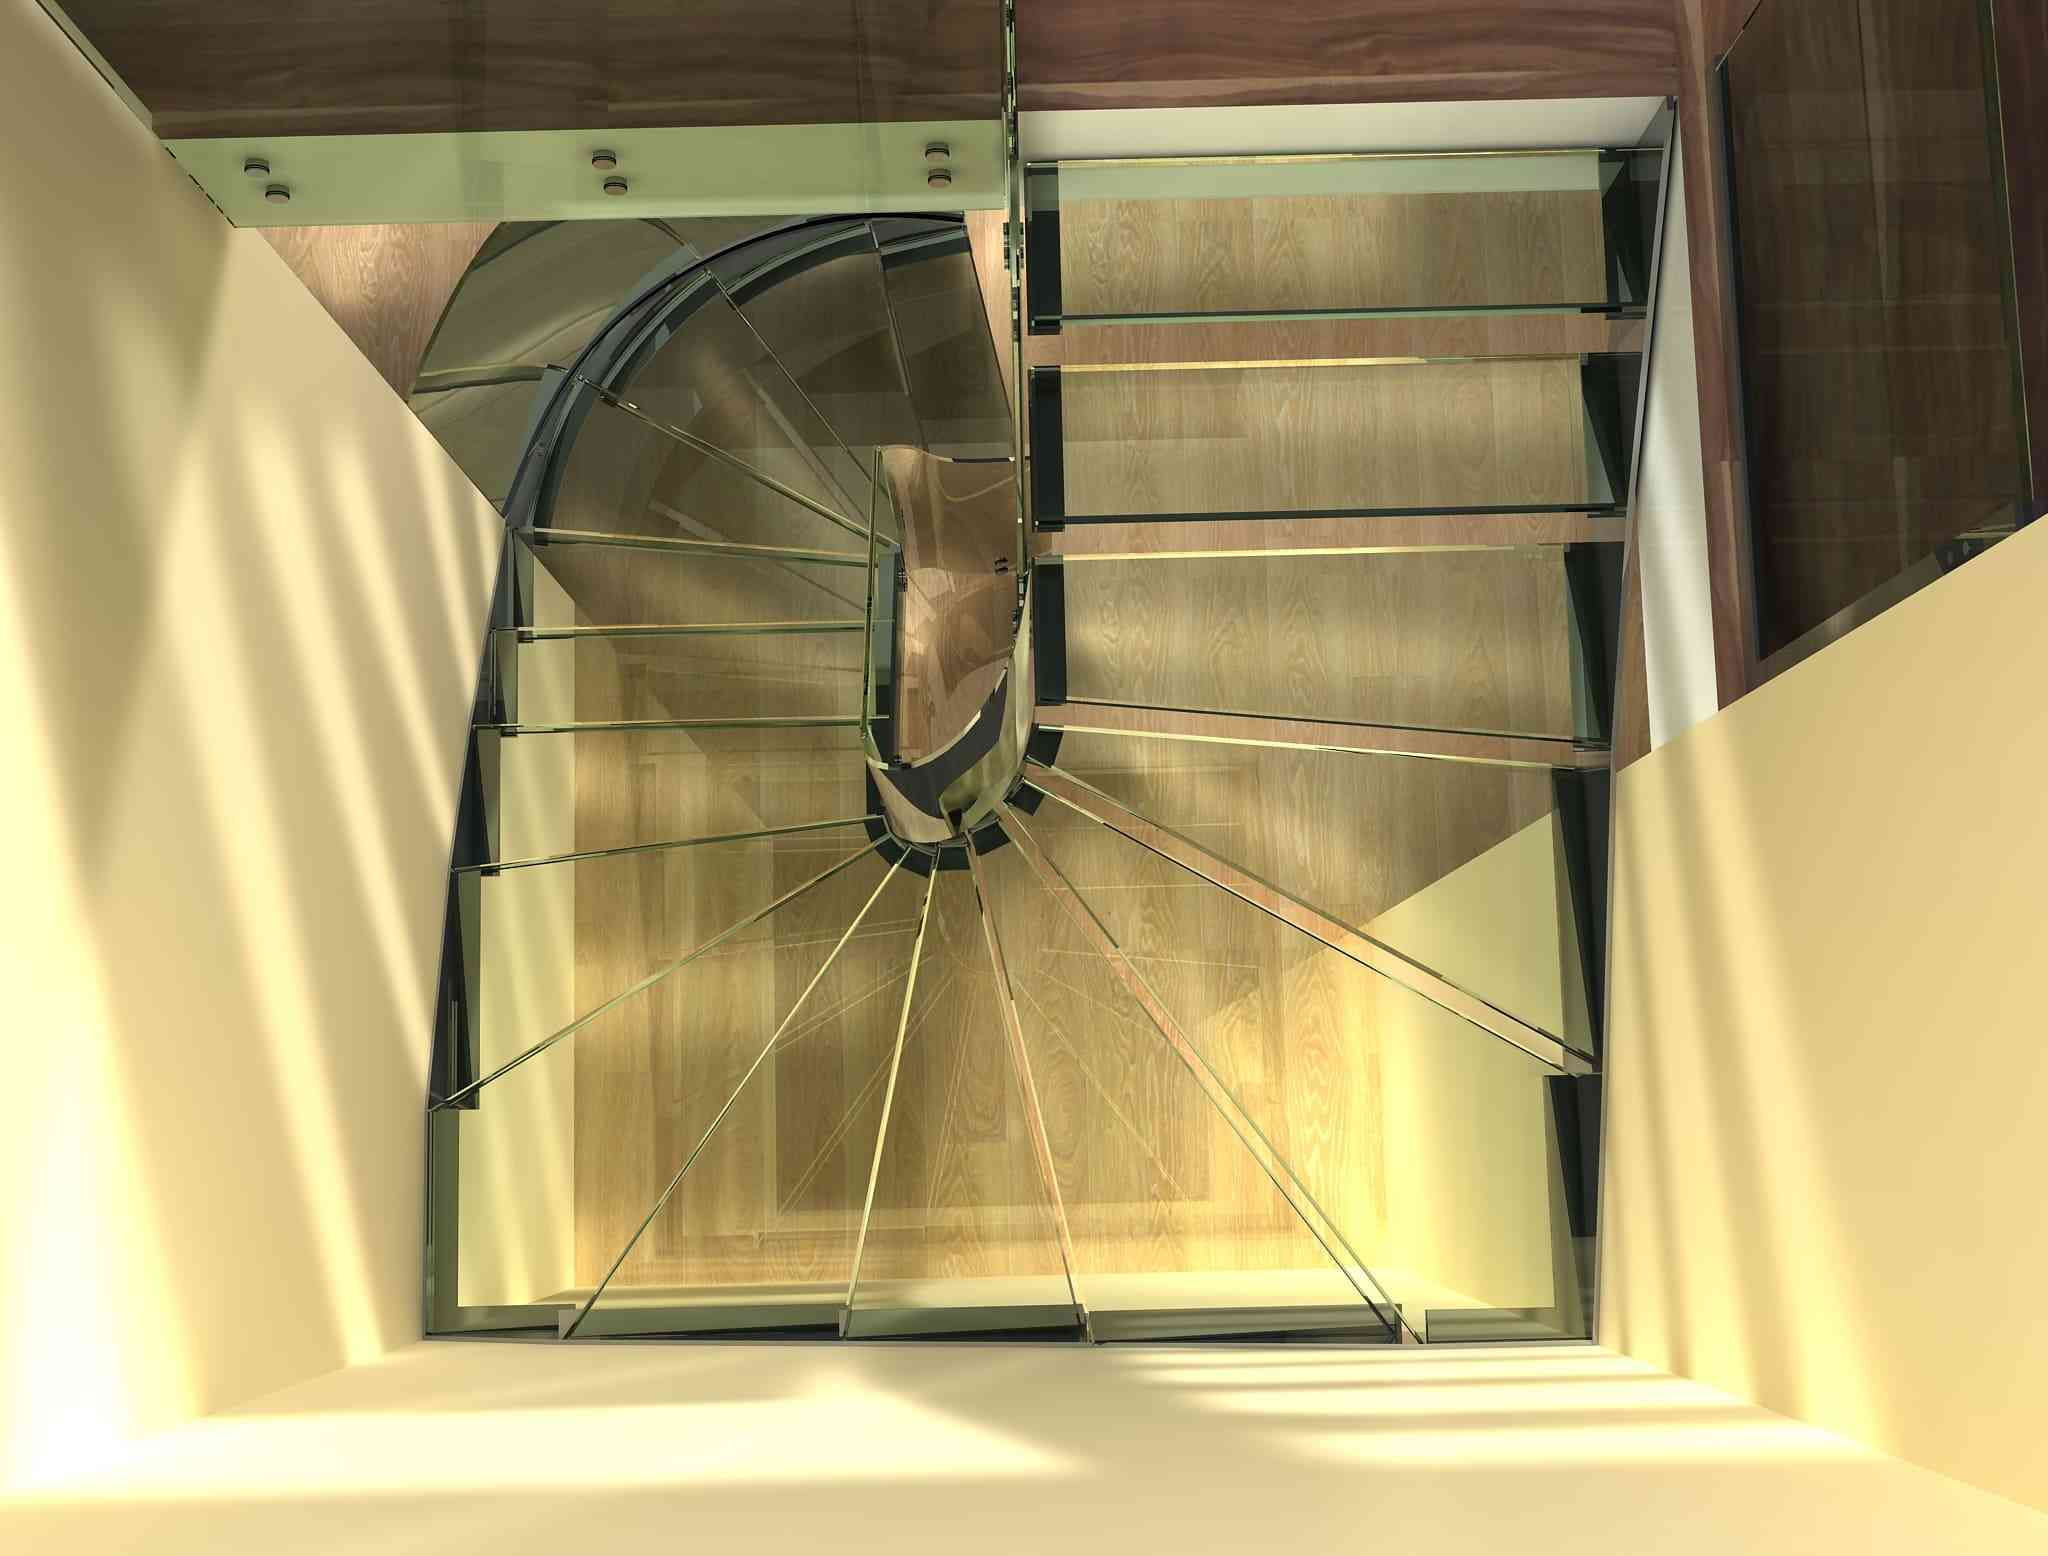 3d-scanner-measure-of-stairs-img-visualization